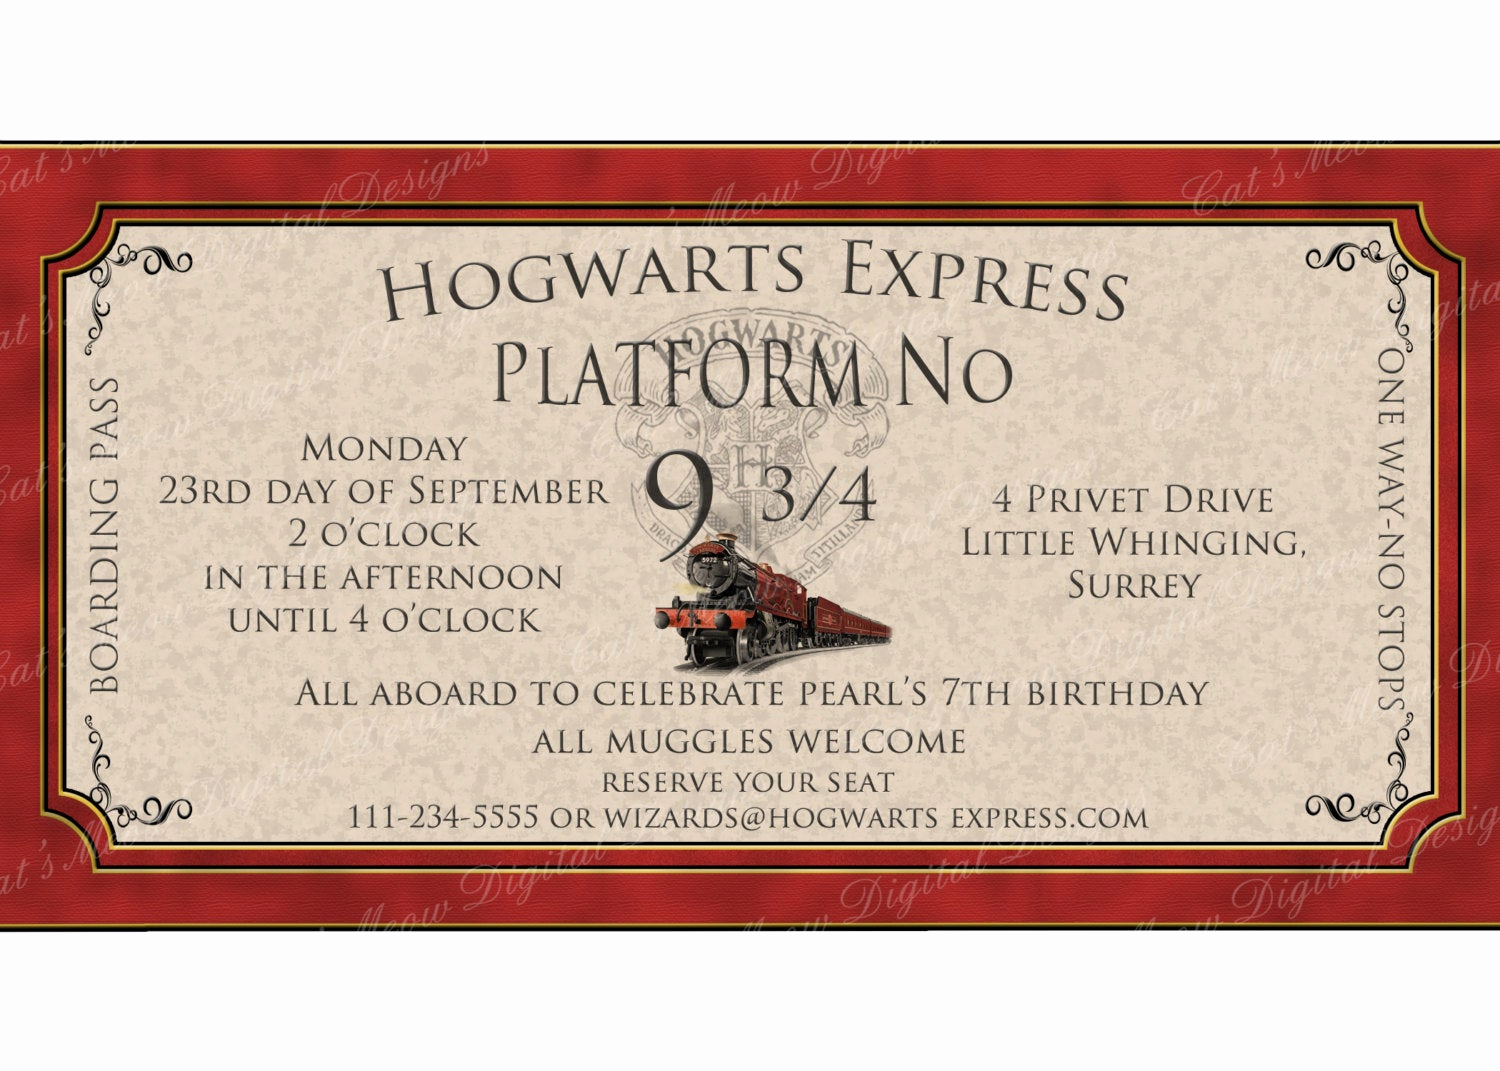 Harry Potter Party Invitation Template Fresh Hogwarts Harry Potter Printable Invitation by Catsmeowddesigns